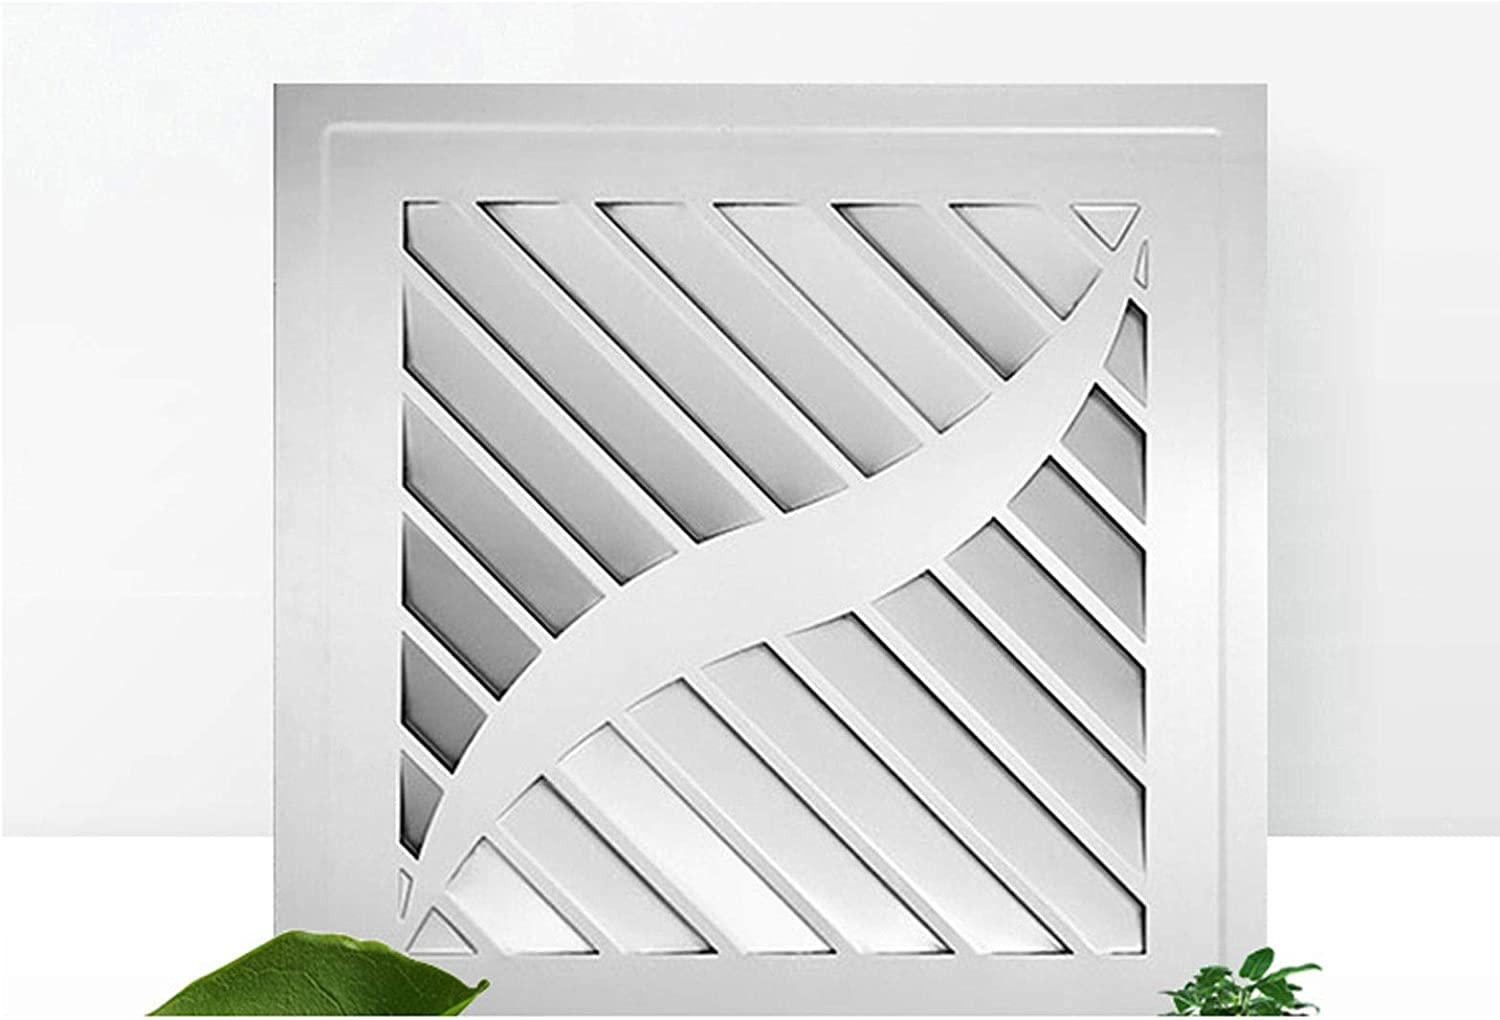 CDQYA Silence Ventilating Strong Exhaust Extractor Fan for Windo